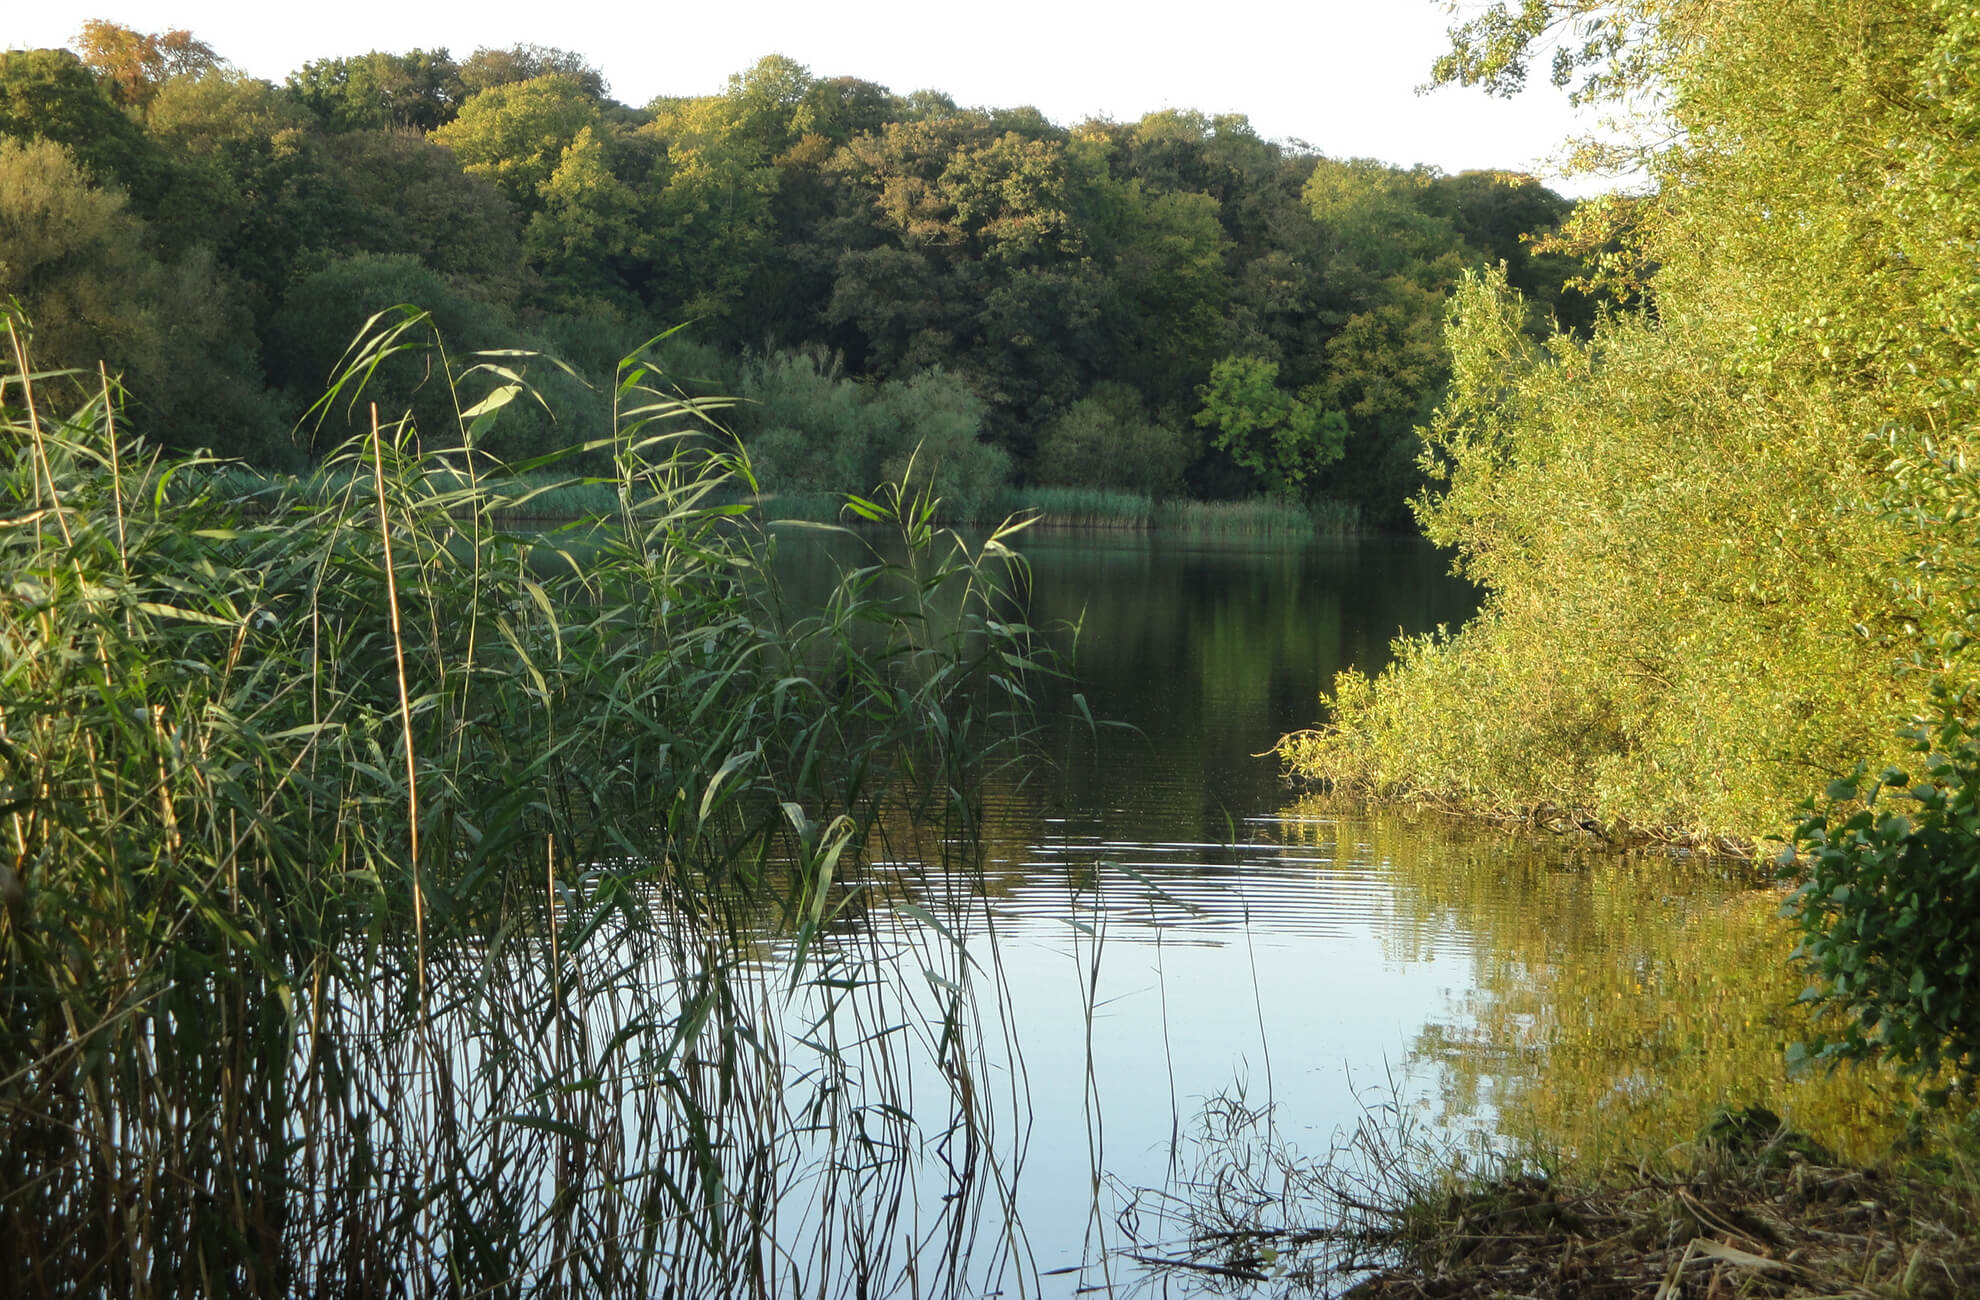 The breathtaking lake at Combermere Abbey is surrounded by ancient woodland